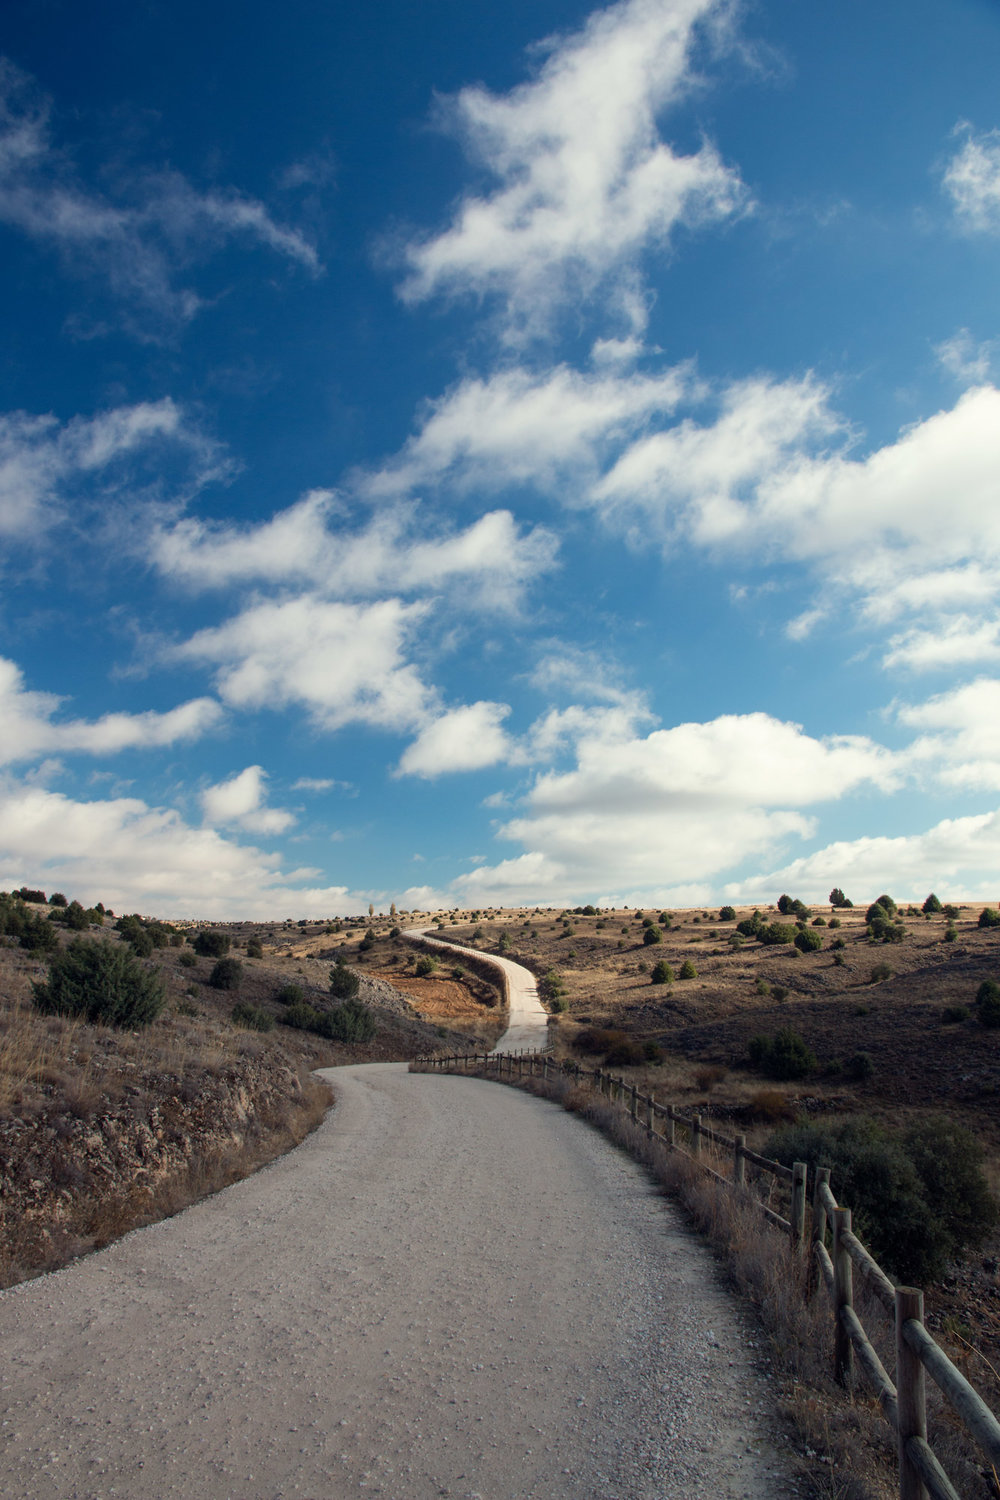 The track to the San Frutos Hermitage, Spain.